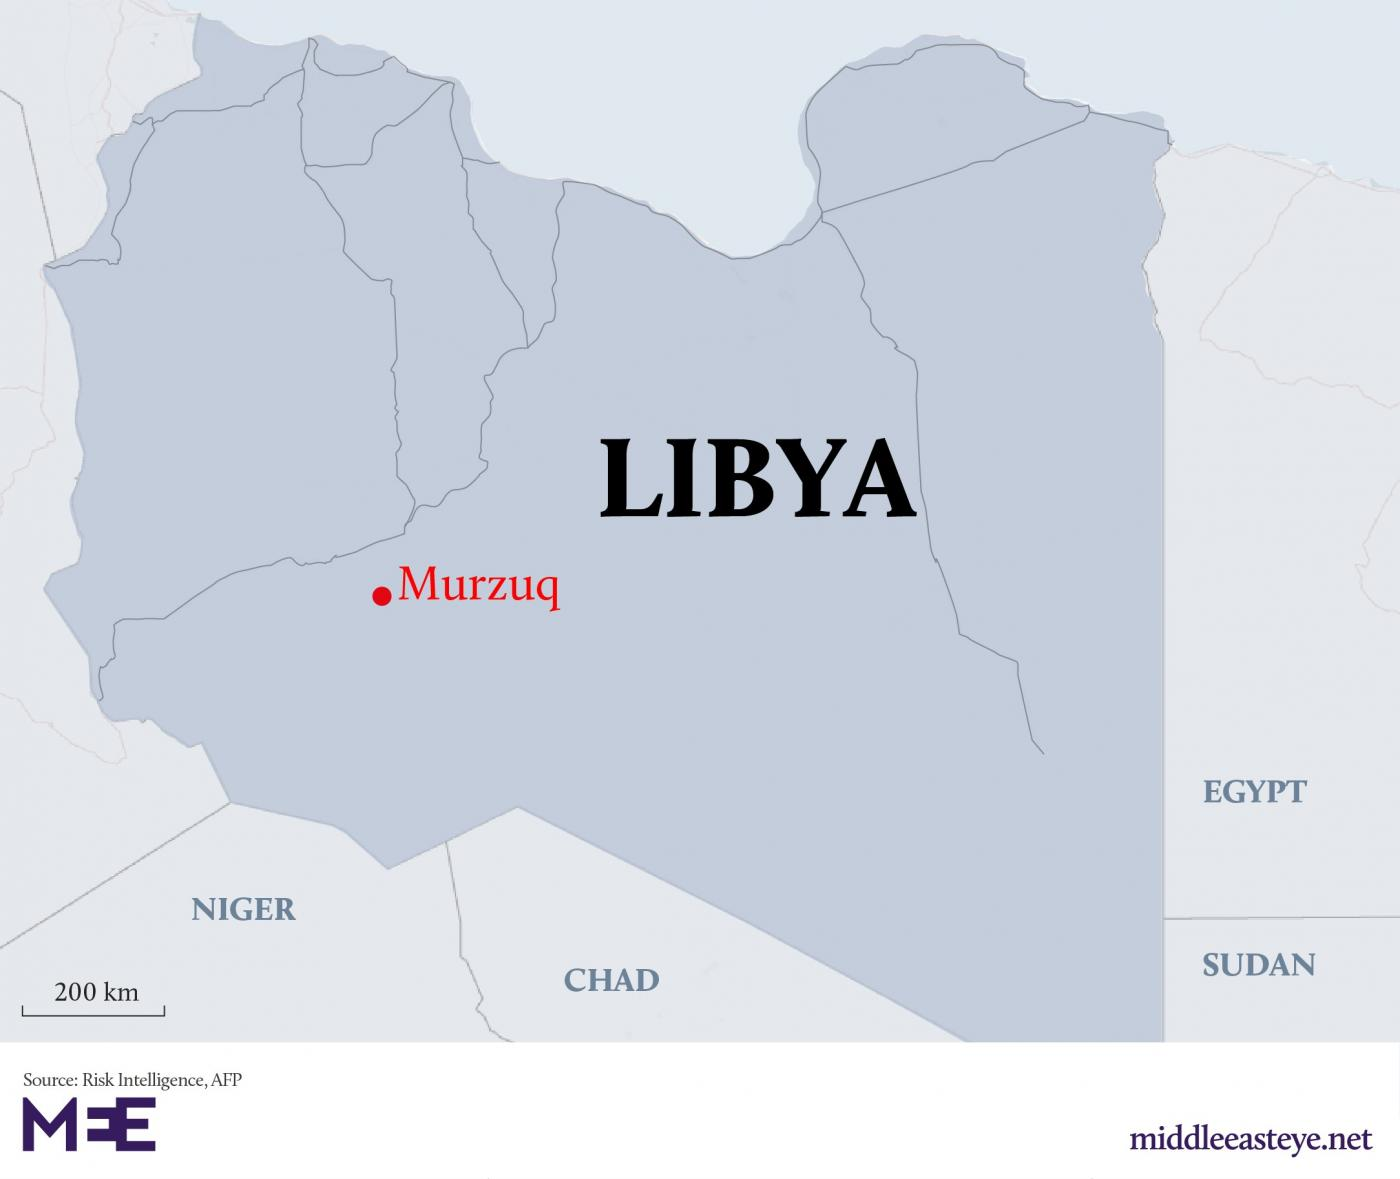 At least 43 killed in air attack on Libya's southern Murzuq, says local official